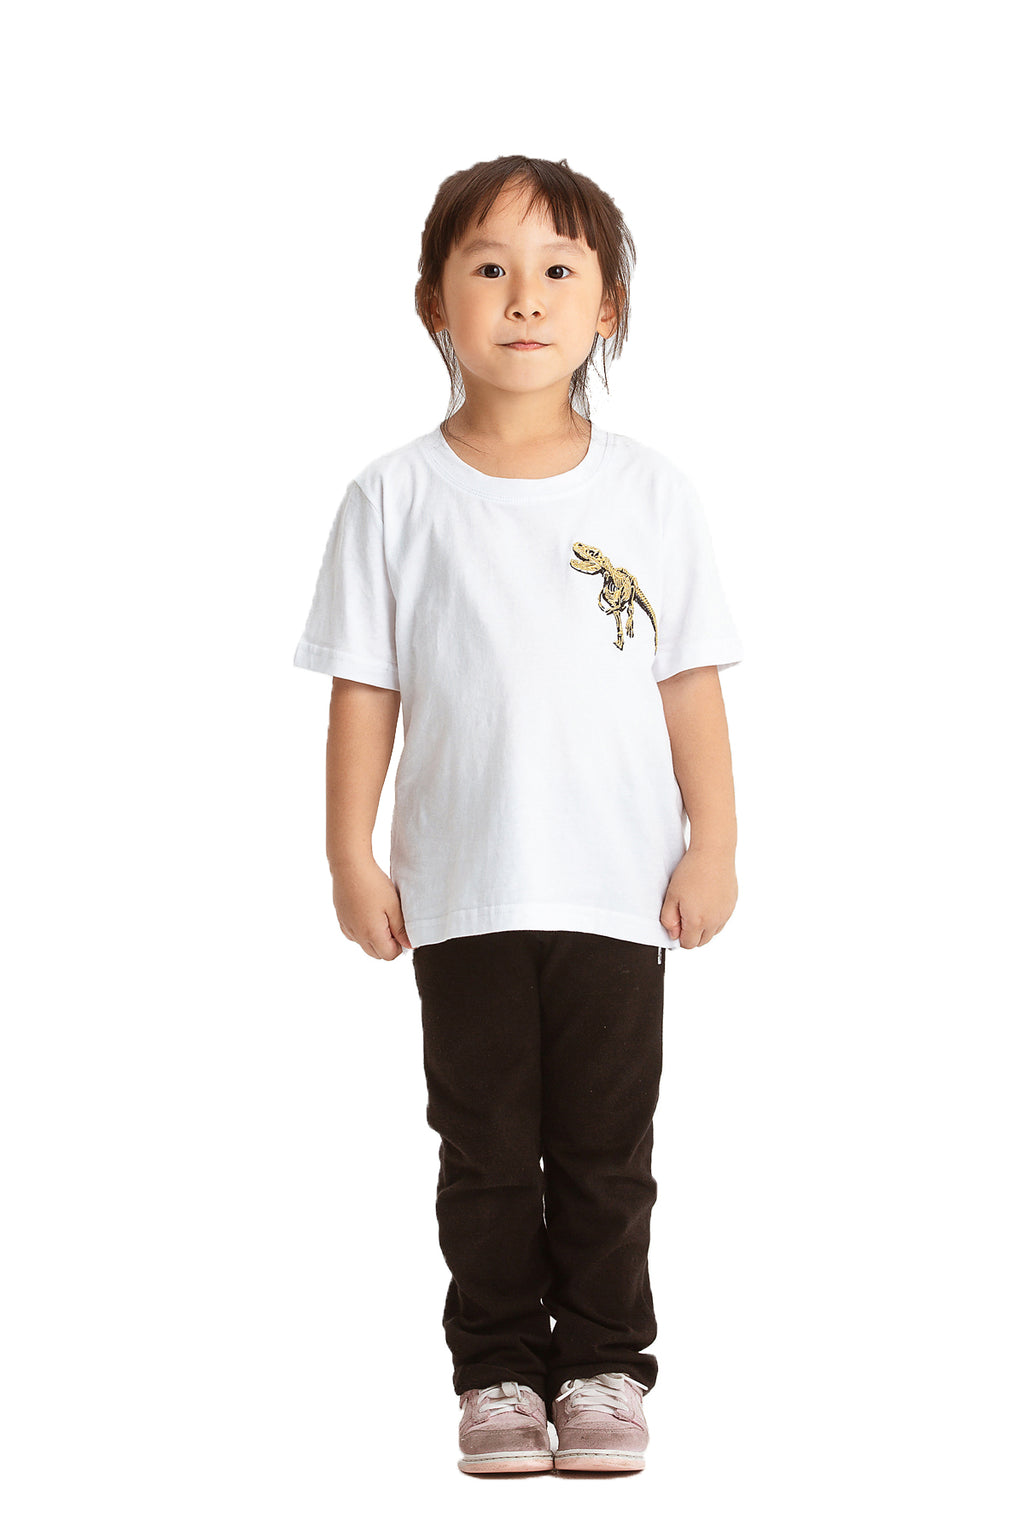 JURASSIC WORLD T-Rex Skeleton T-Shirt for Kids